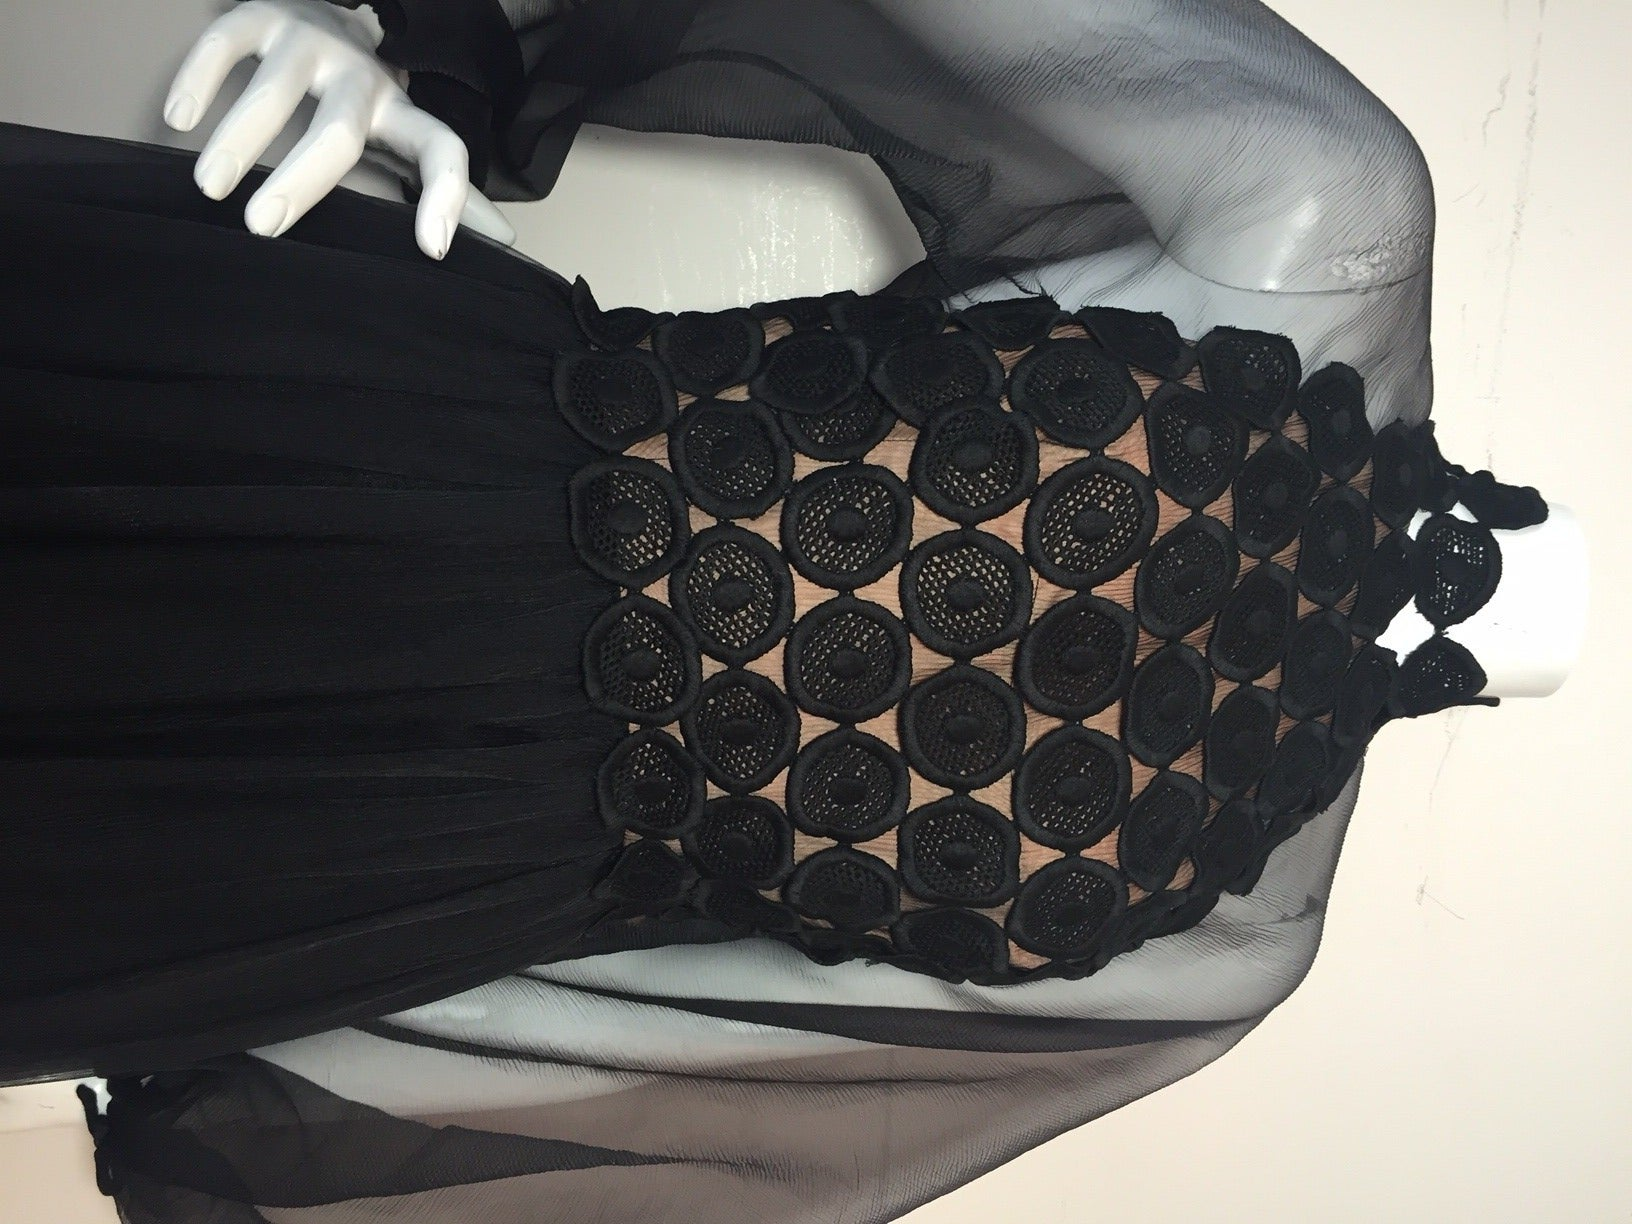 1970s Werle Hostess Gown in Black Chiffon and Circular Lace For Sale 2